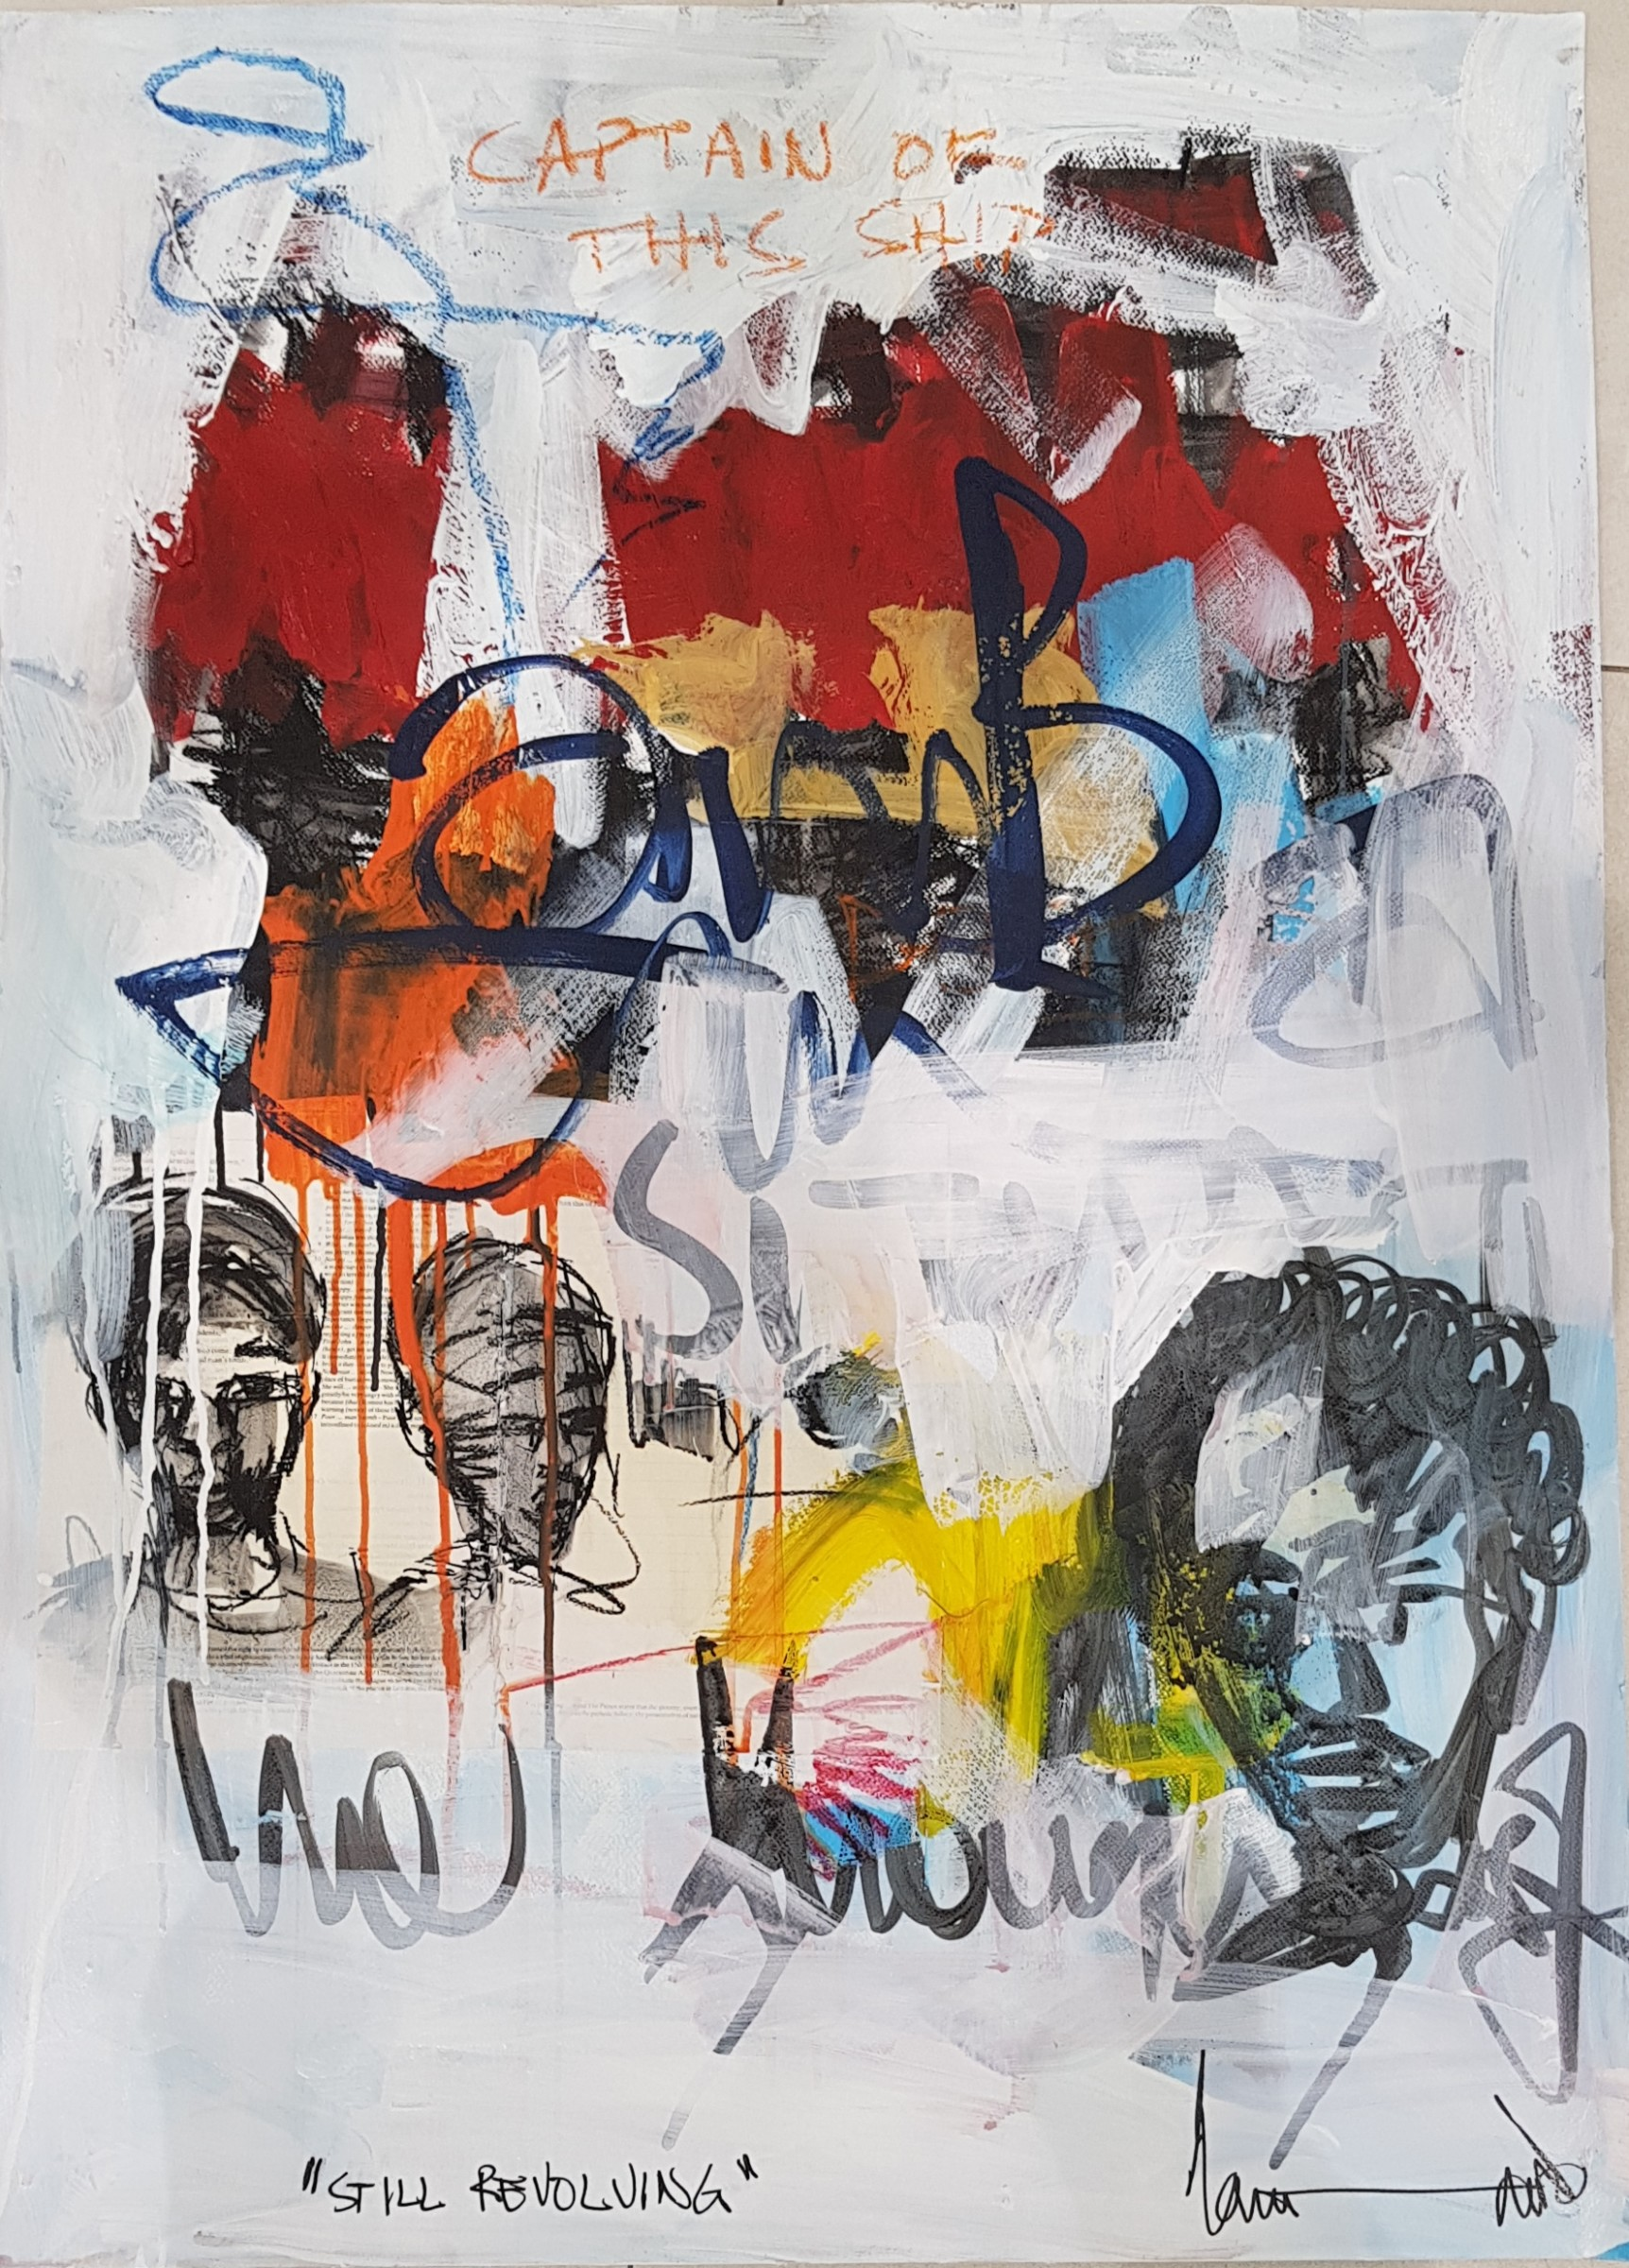 <span class=&#34;link fancybox-details-link&#34;><a href=&#34;/artists/83/series/other-works/6411-thando-ngwenya-still-revolving-2018/&#34;>View Detail Page</a></span><div class=&#34;artist&#34;><strong>Thando Ngwenya</strong></div> <div class=&#34;title&#34;><em>Still Revolving</em>, 2018</div> <div class=&#34;medium&#34;>Mixed Media on Fabriano</div> <div class=&#34;dimensions&#34;>1045mm x 745mm Unframed</div>